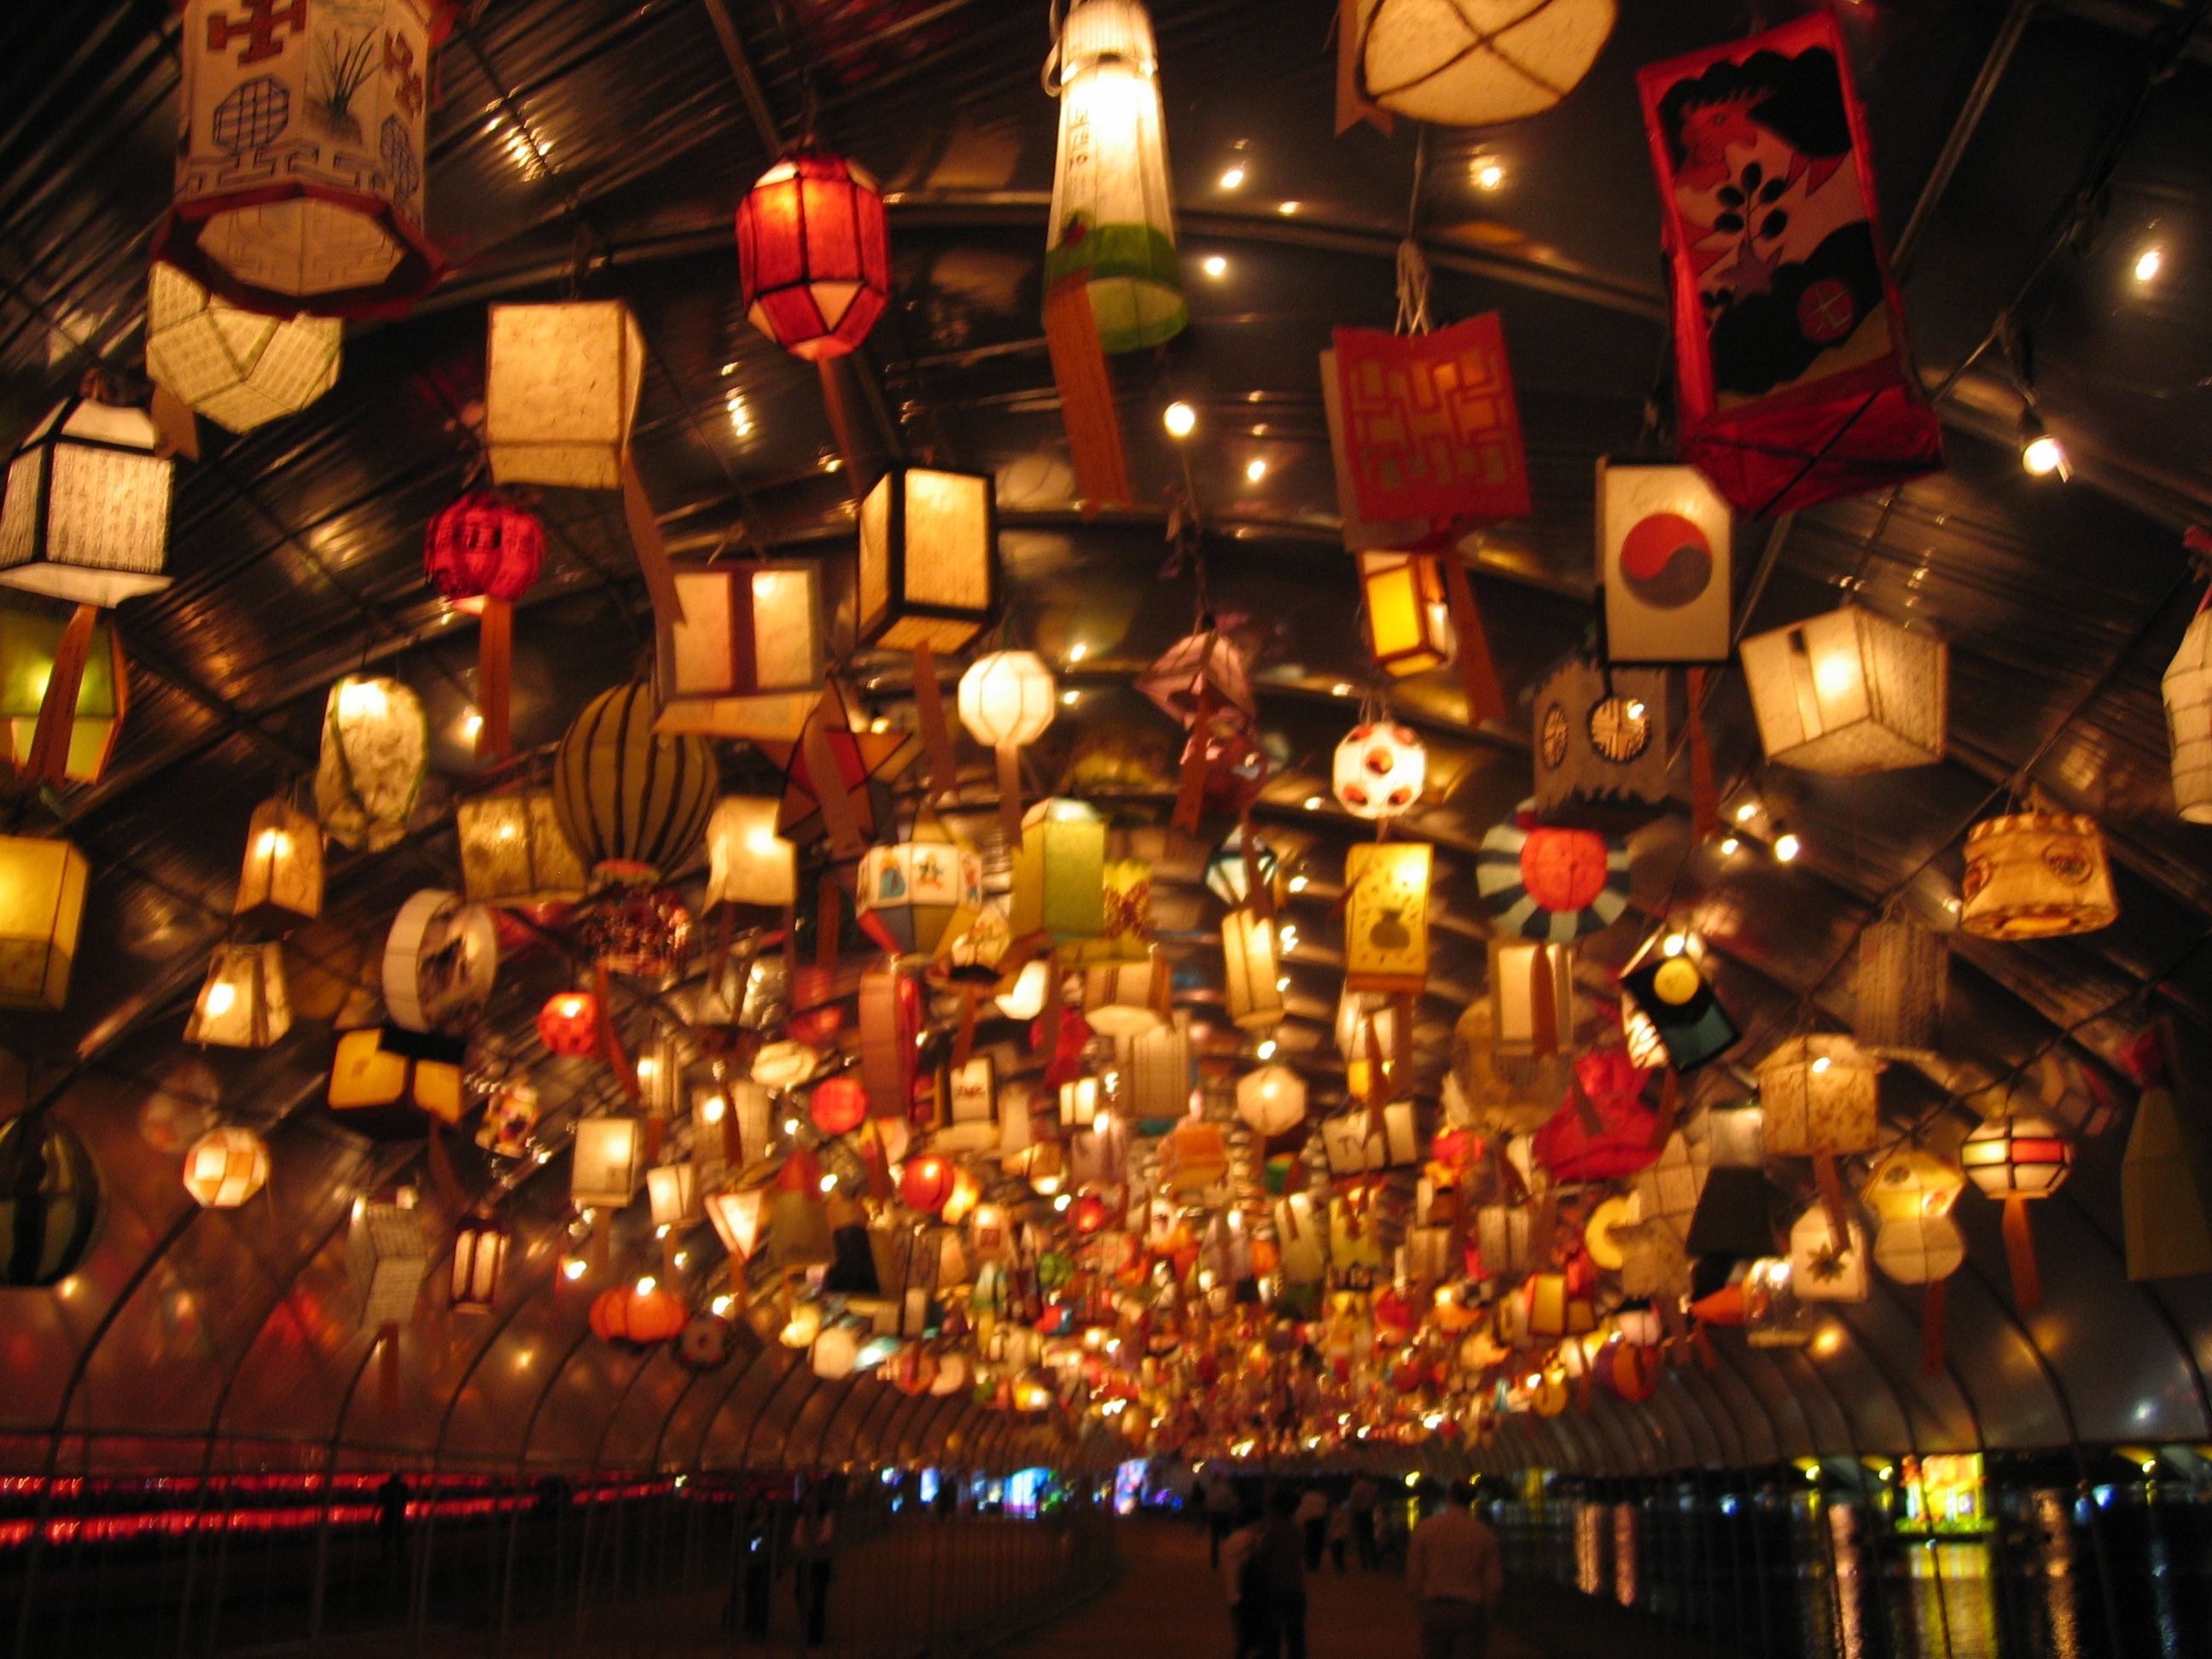 Paper lanterns wedding decoration ideas  Lots of Lanterns  Beauty  Pinterest  Ceiling and Lights